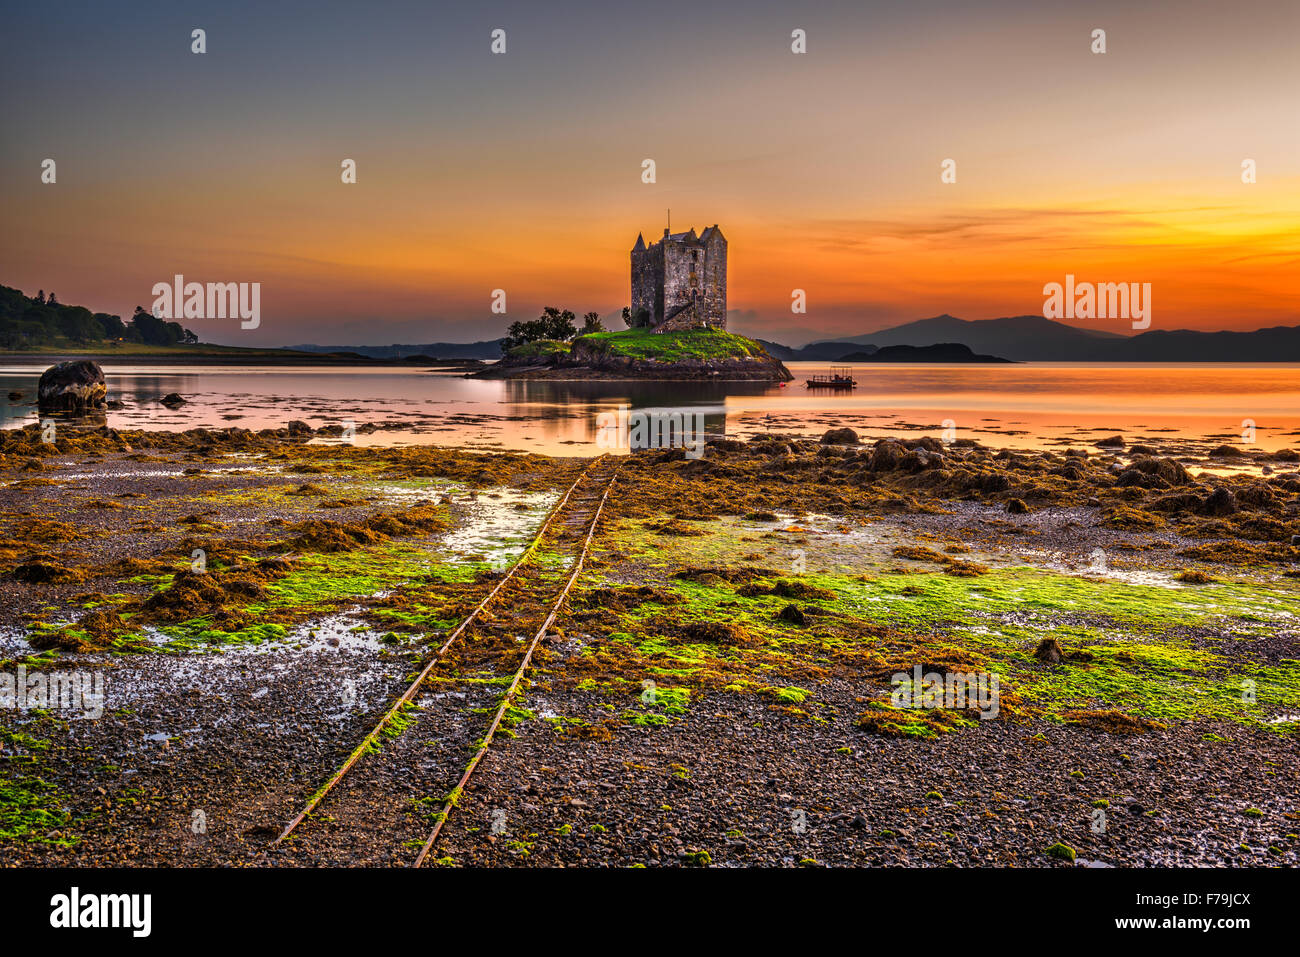 Sunset over Castle Stalker, Highlands, Scotland, United Kingdom. Long exposure and hdr processed. - Stock Image